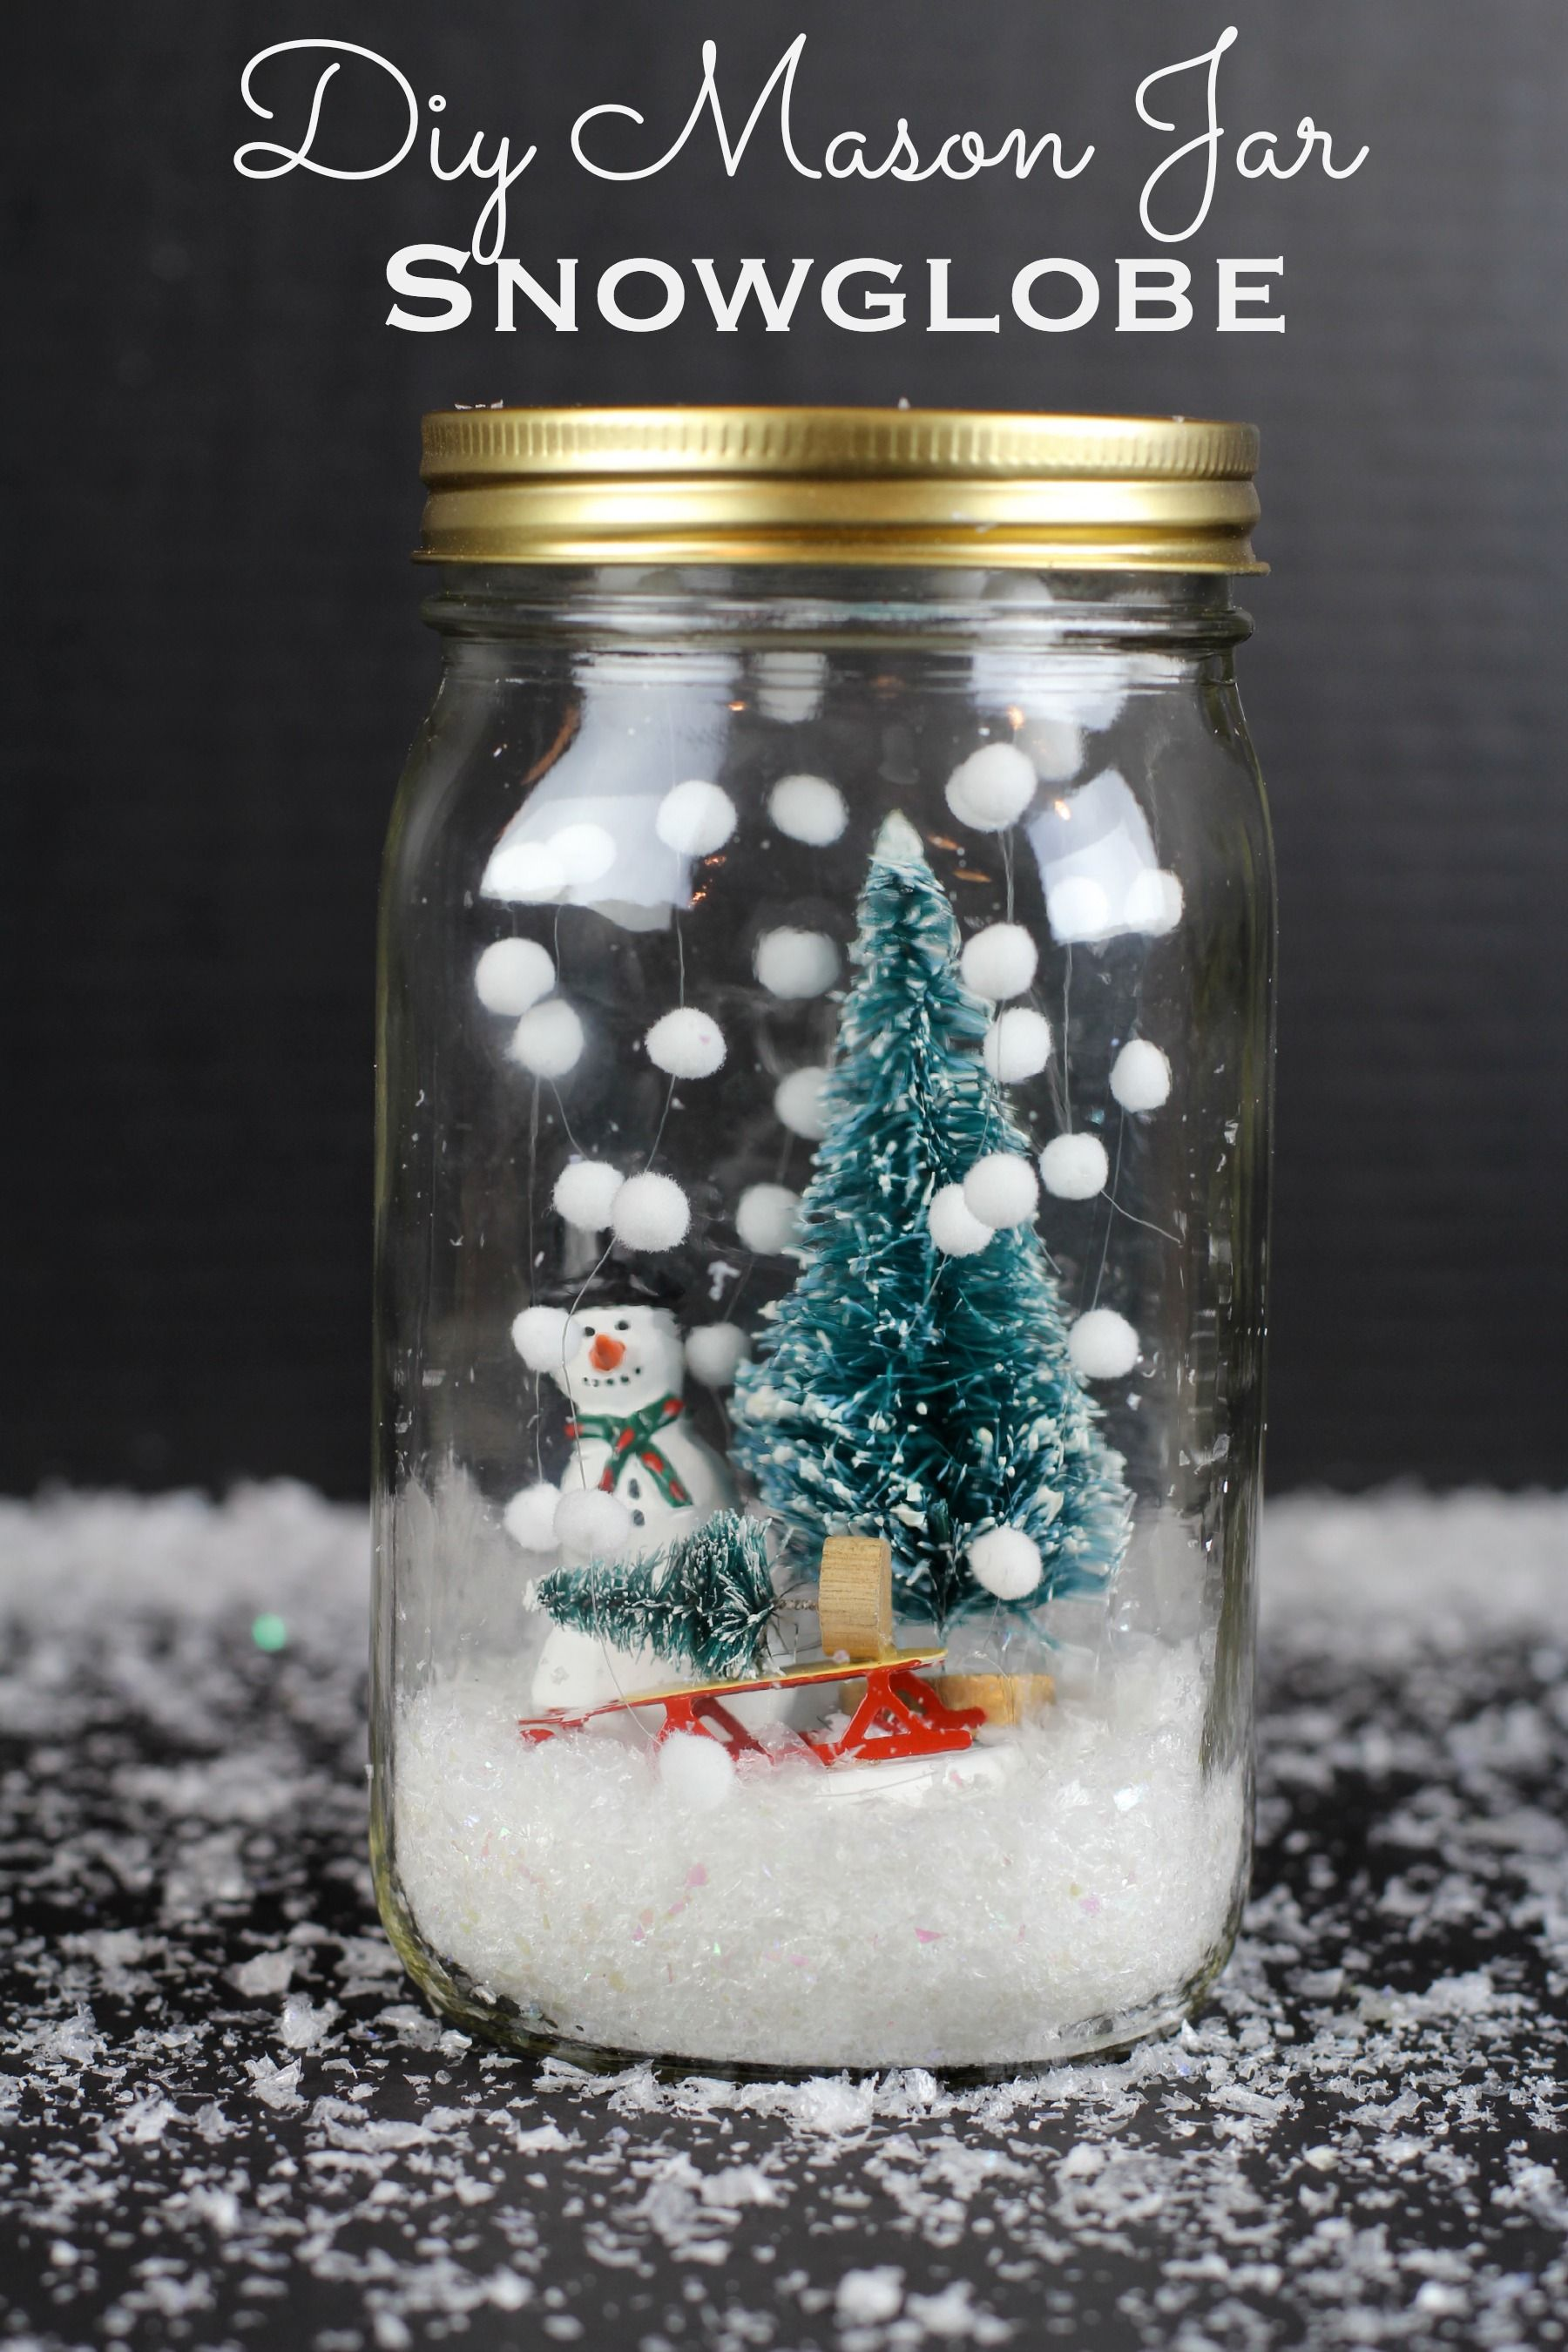 diy mason jar snowglobe use pearls on a string for size appropriate snowfall